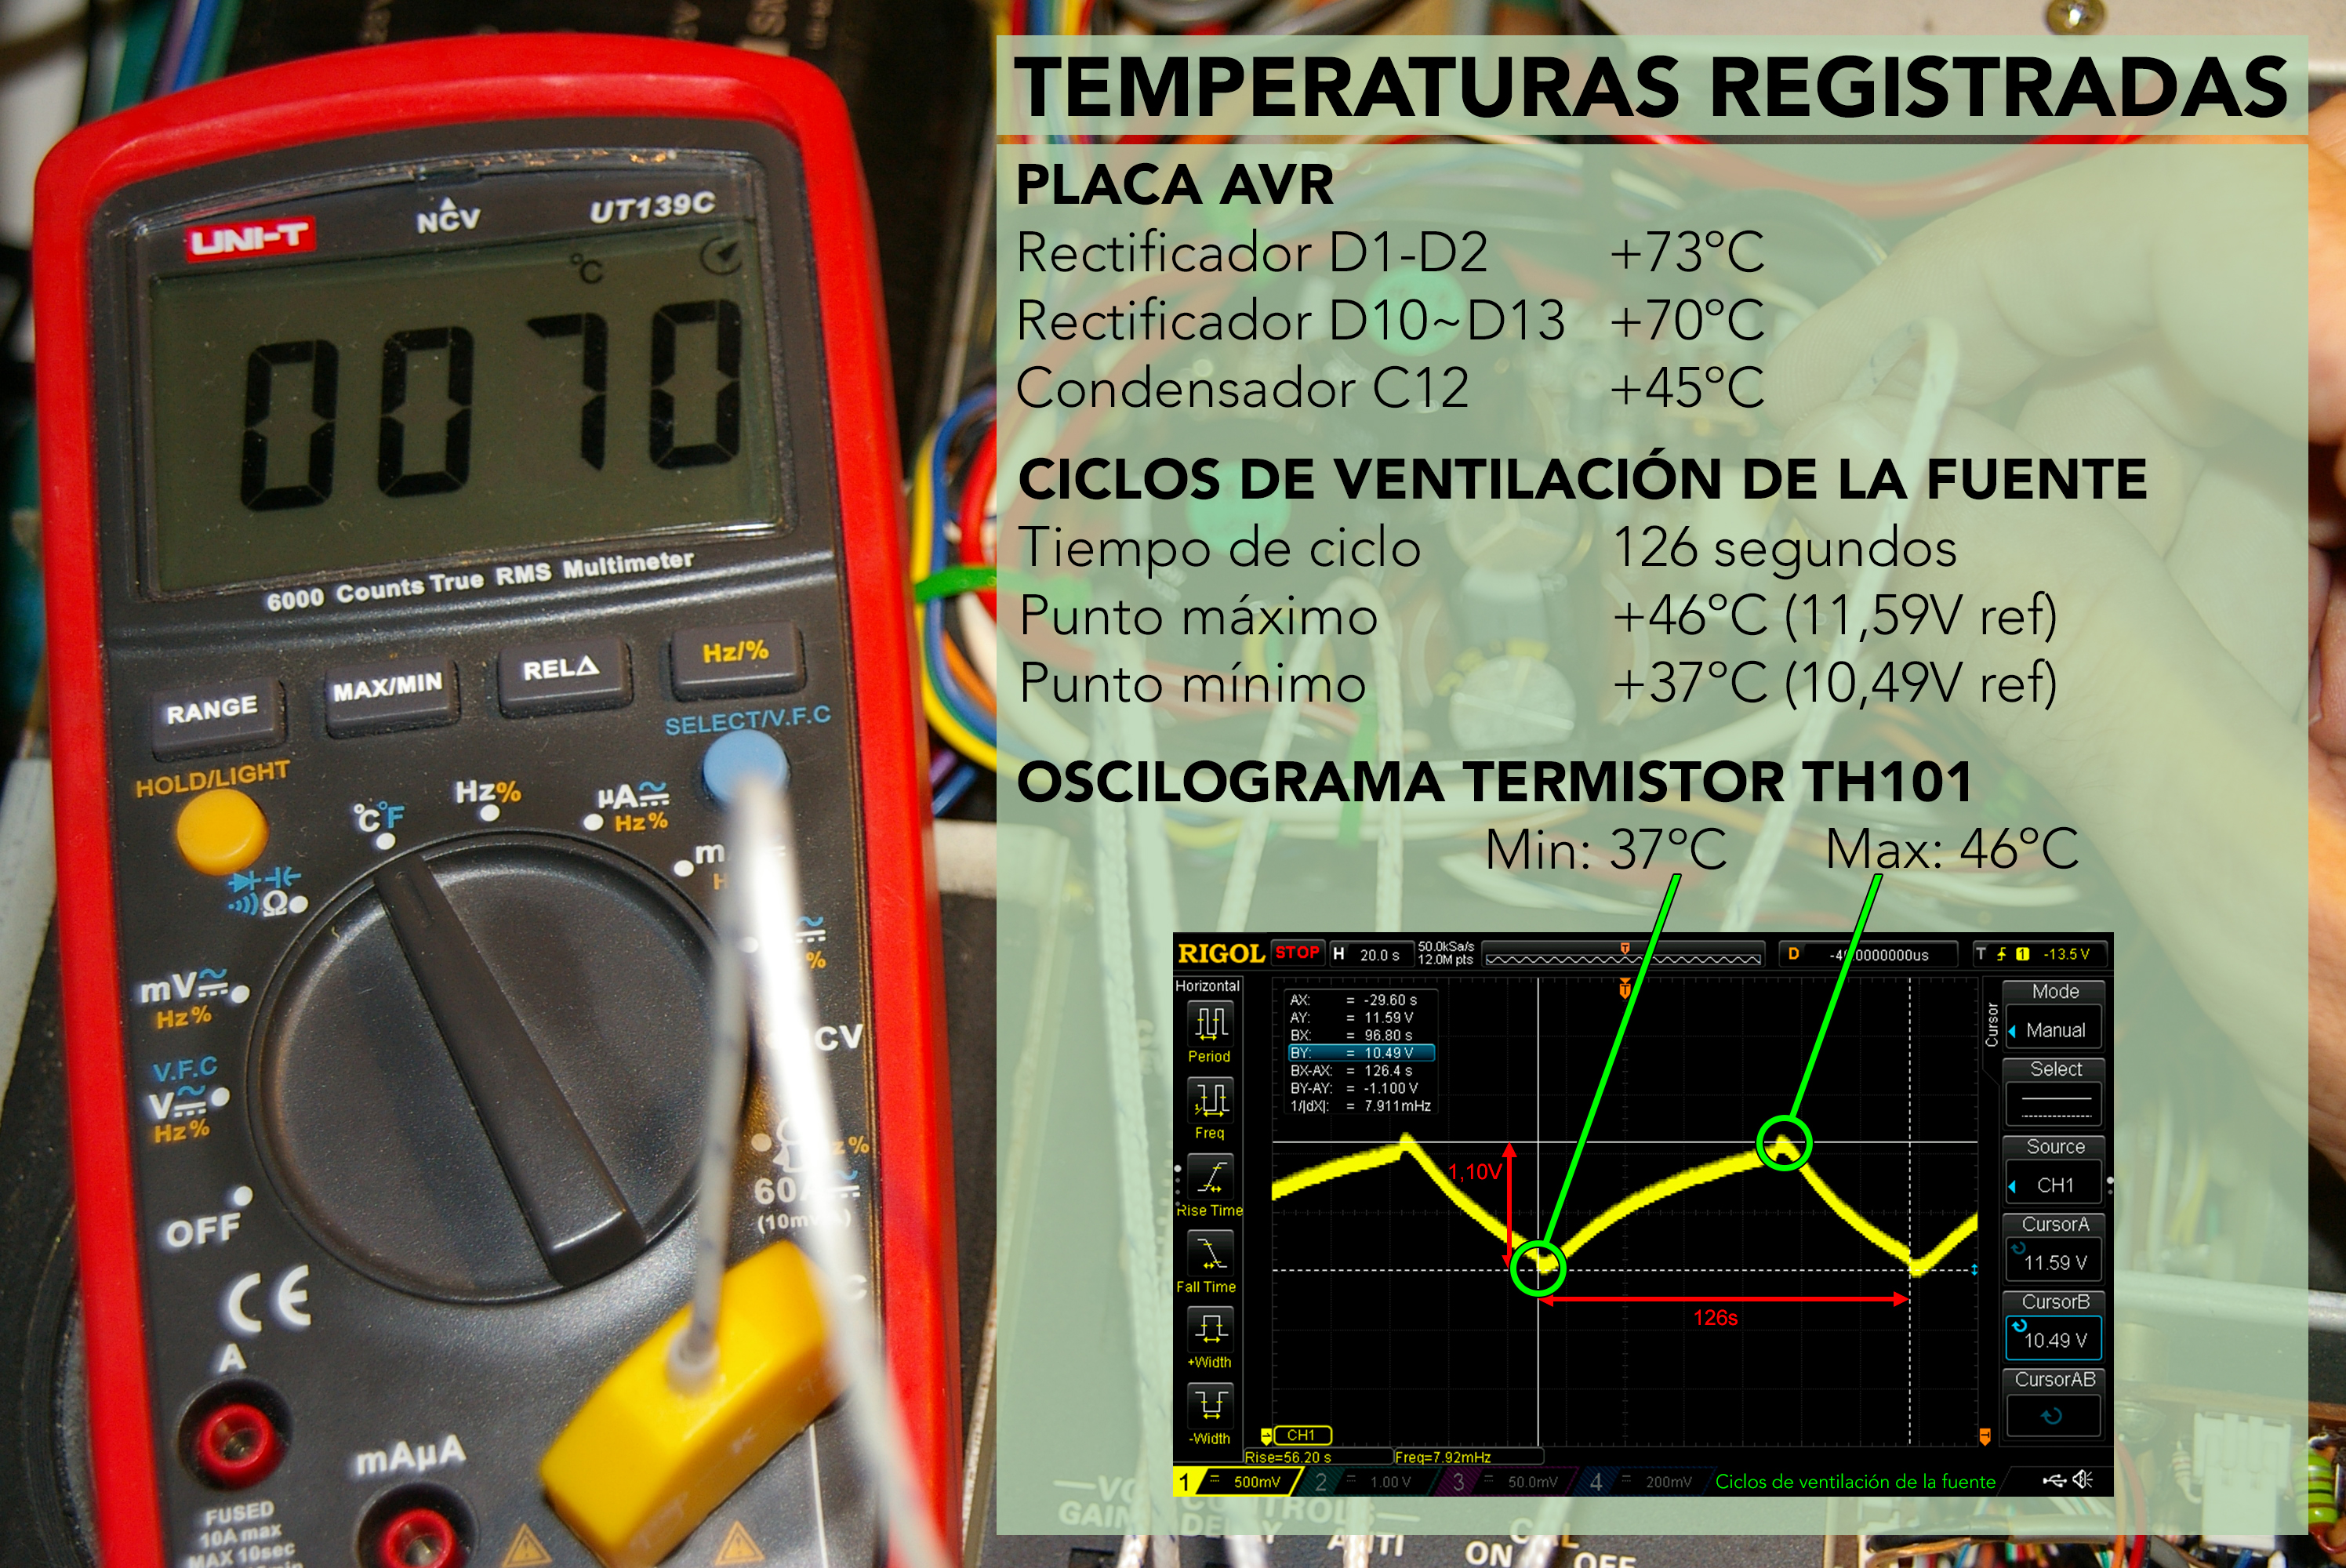 TS940_11_Temperaturas